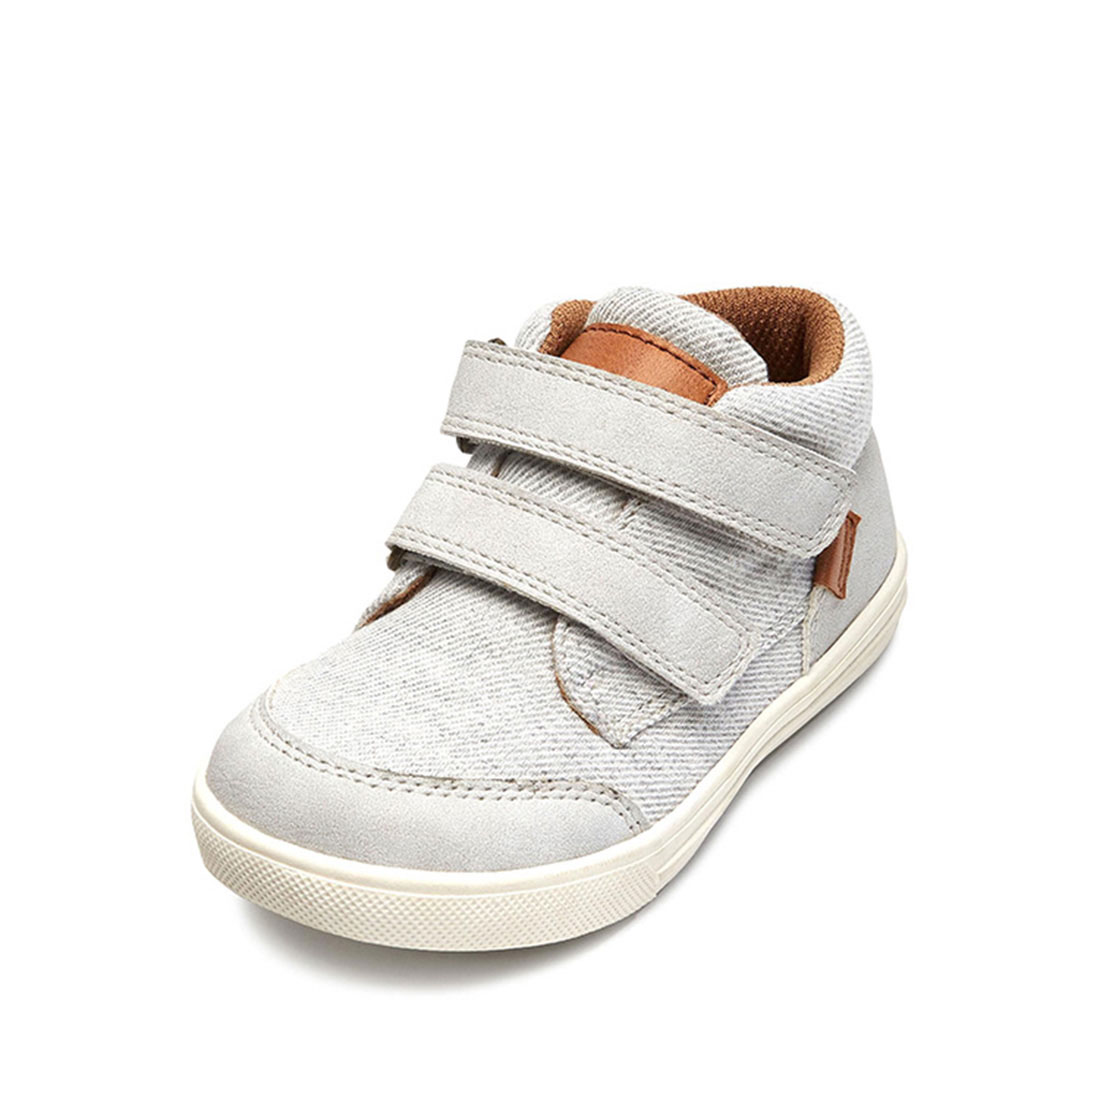 Suede leather and fabric upper gray flat round toe casual best shoes for boys